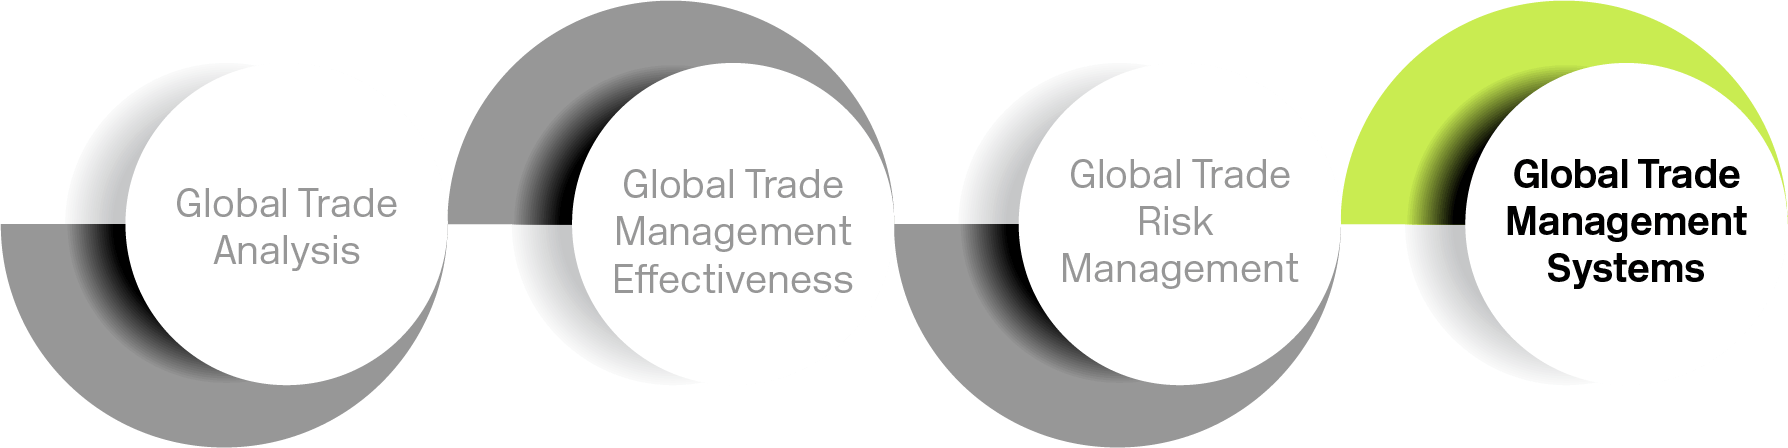 Graphic of Global trade management systems